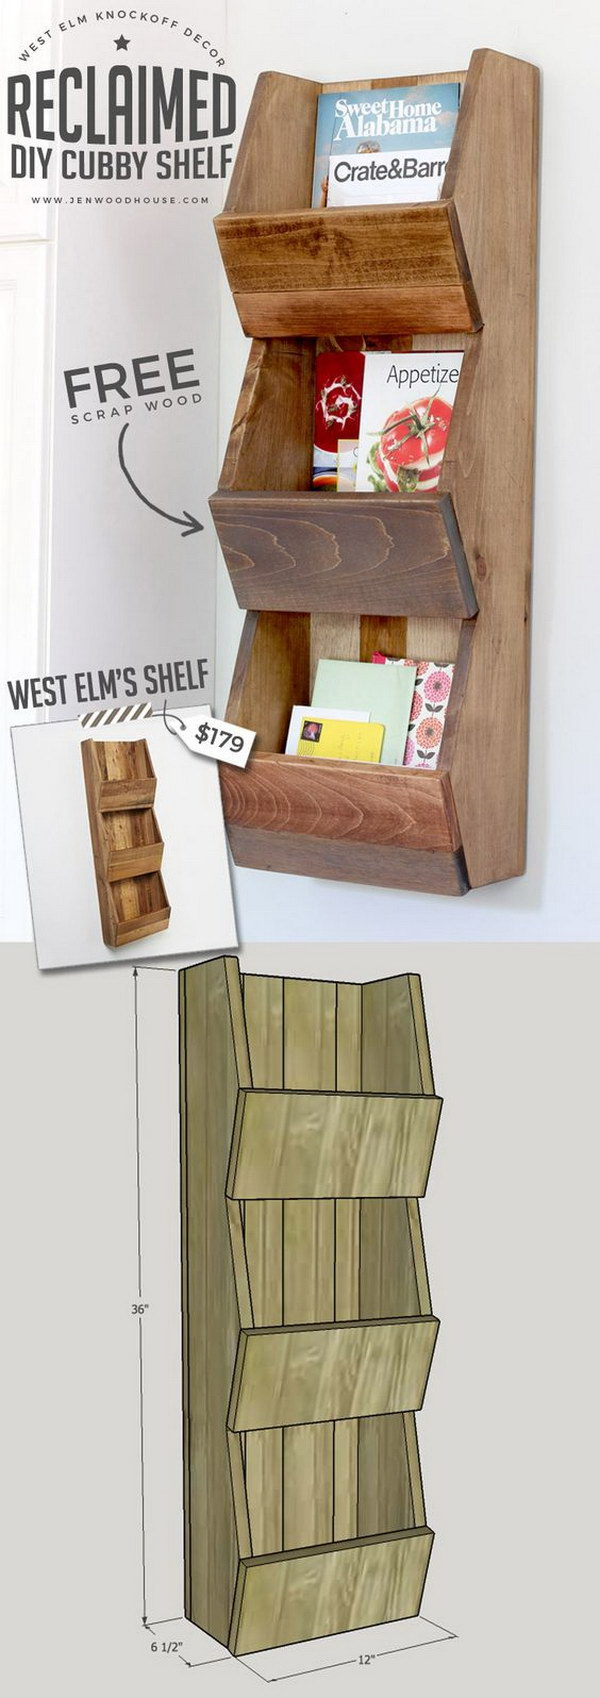 West Elm Knockoff, Reclaimed Cubby Shelf.